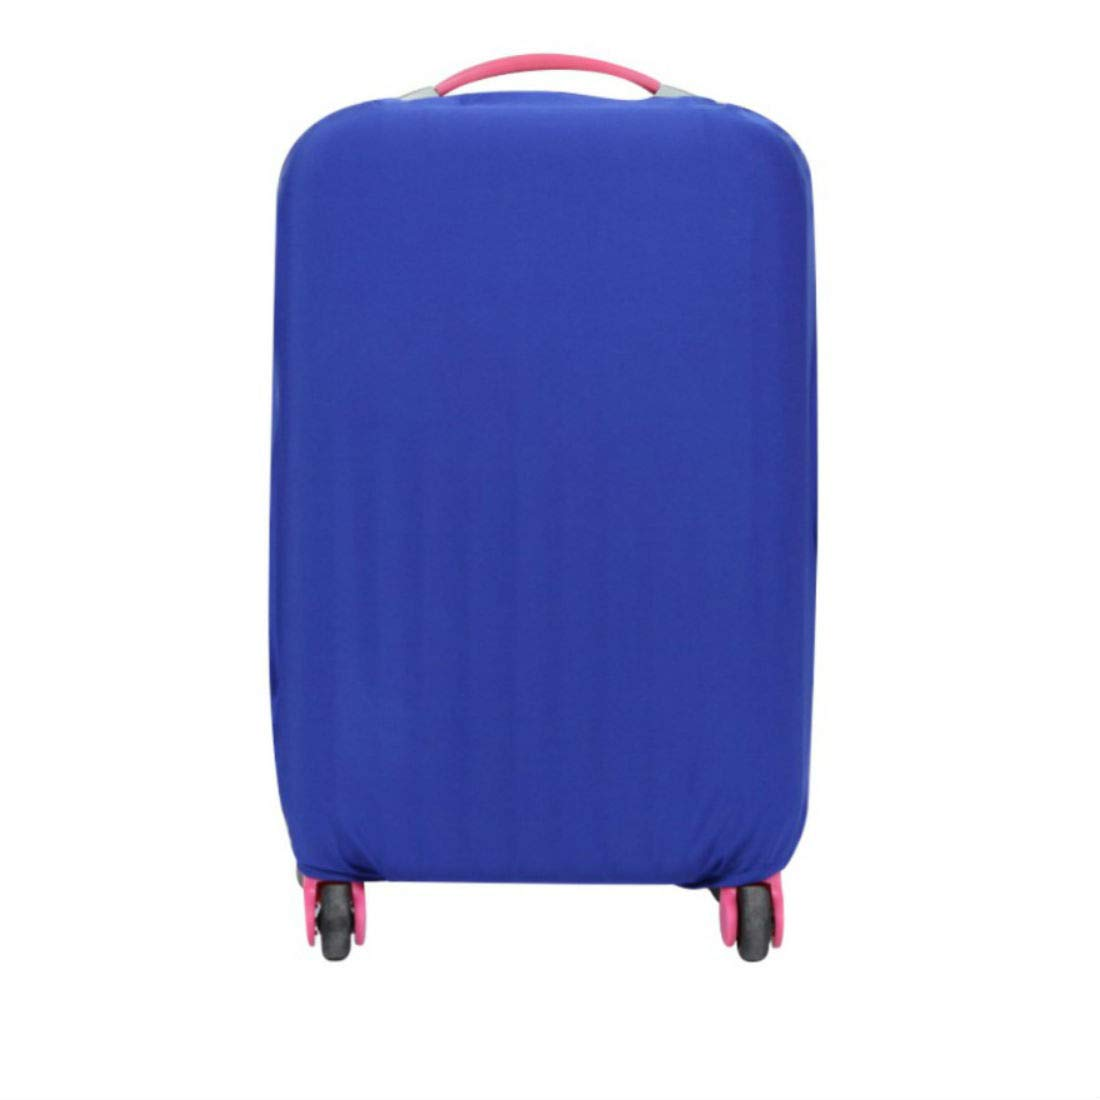 Blue US 18-26 inch Travel Luggage Suitcase Protective Dust-proof Cover Case Protector (LARGE) by Unknown